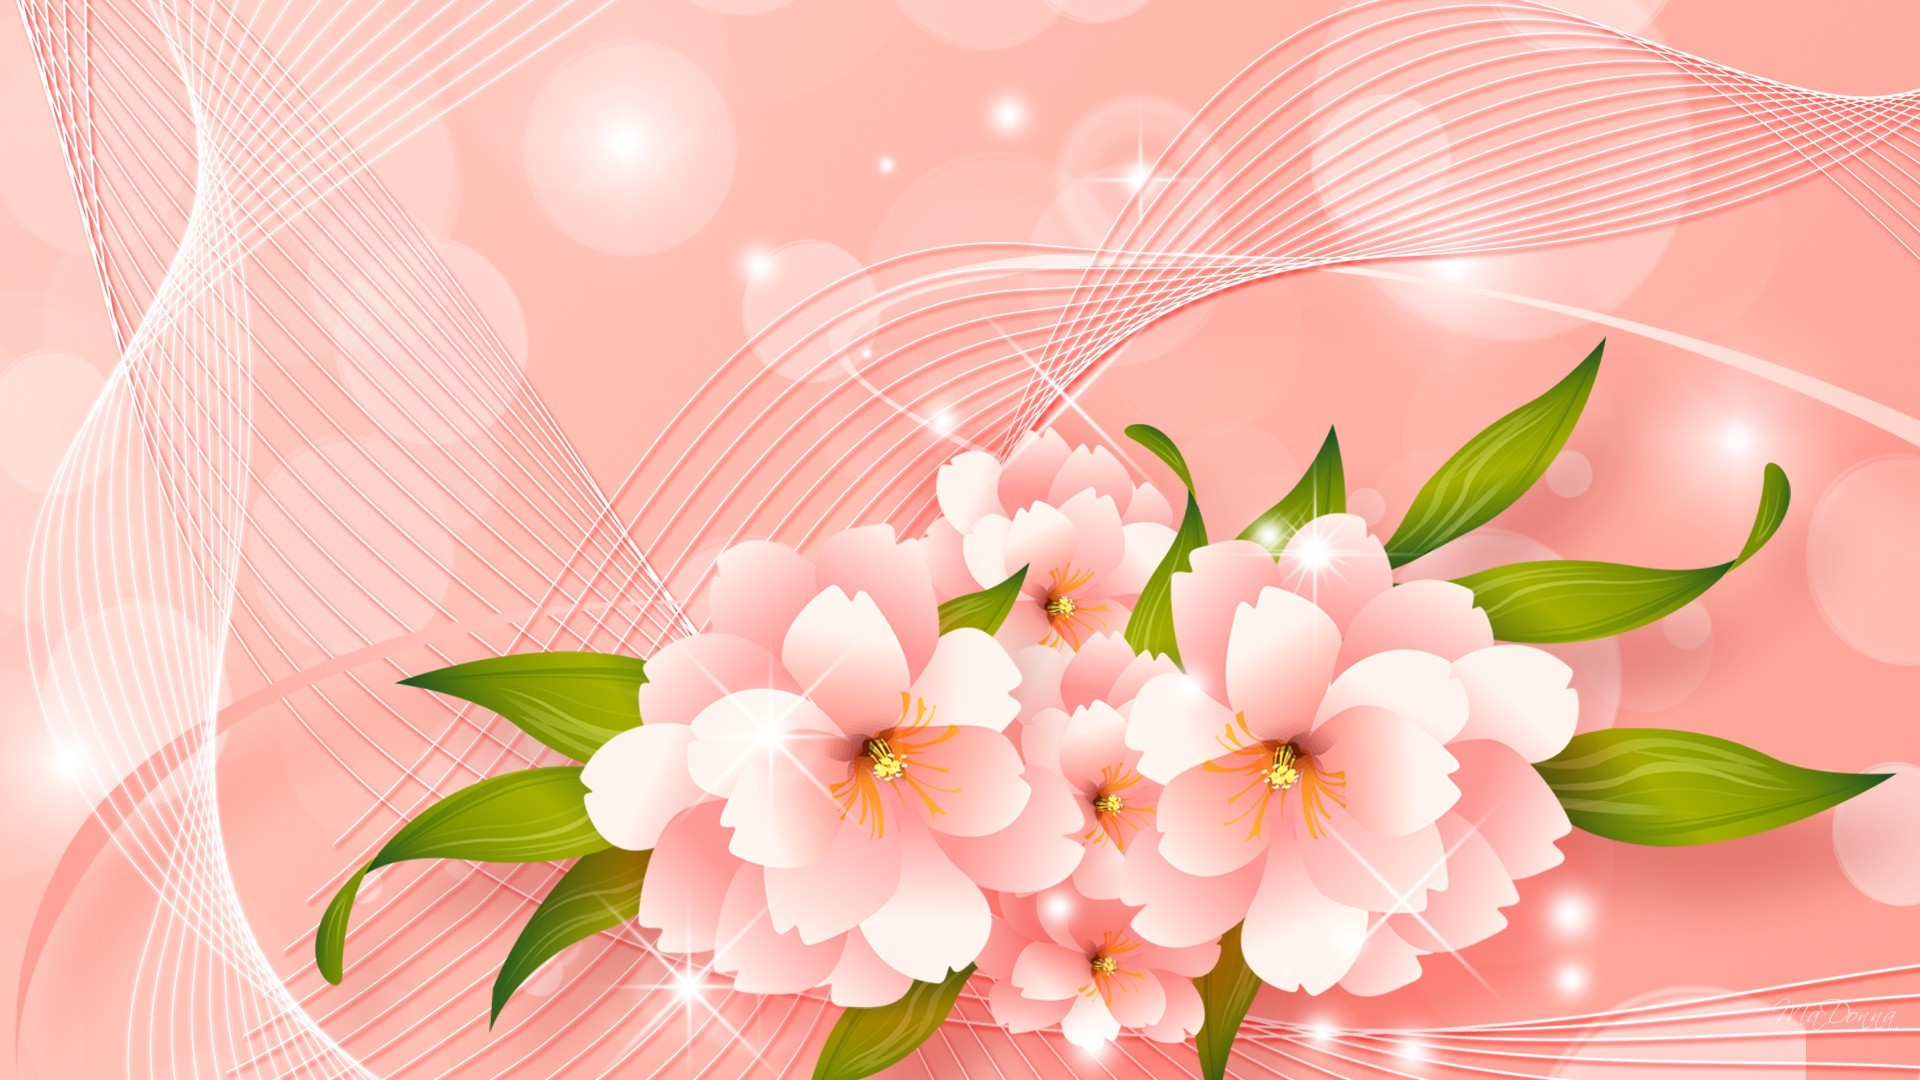 1920x1080 3d abstract pink peach flowers full hd wallpaper download peach flowers  images free